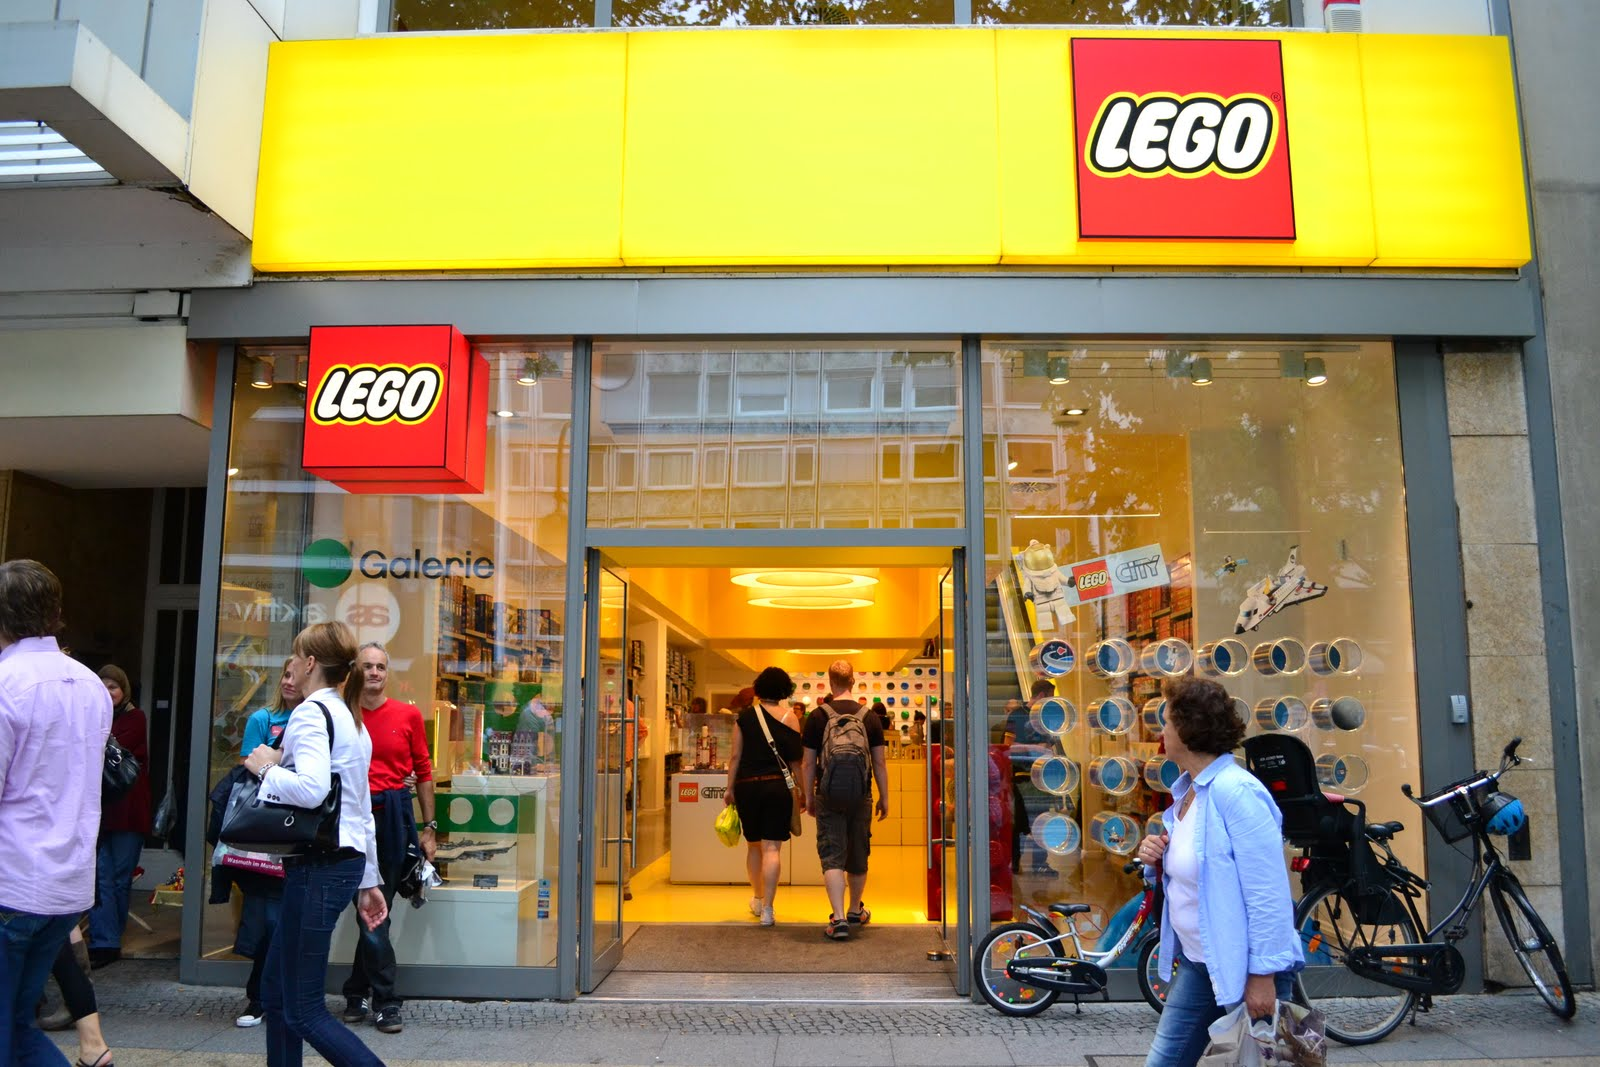 LEGO LEGO Store at Berlin, Germany